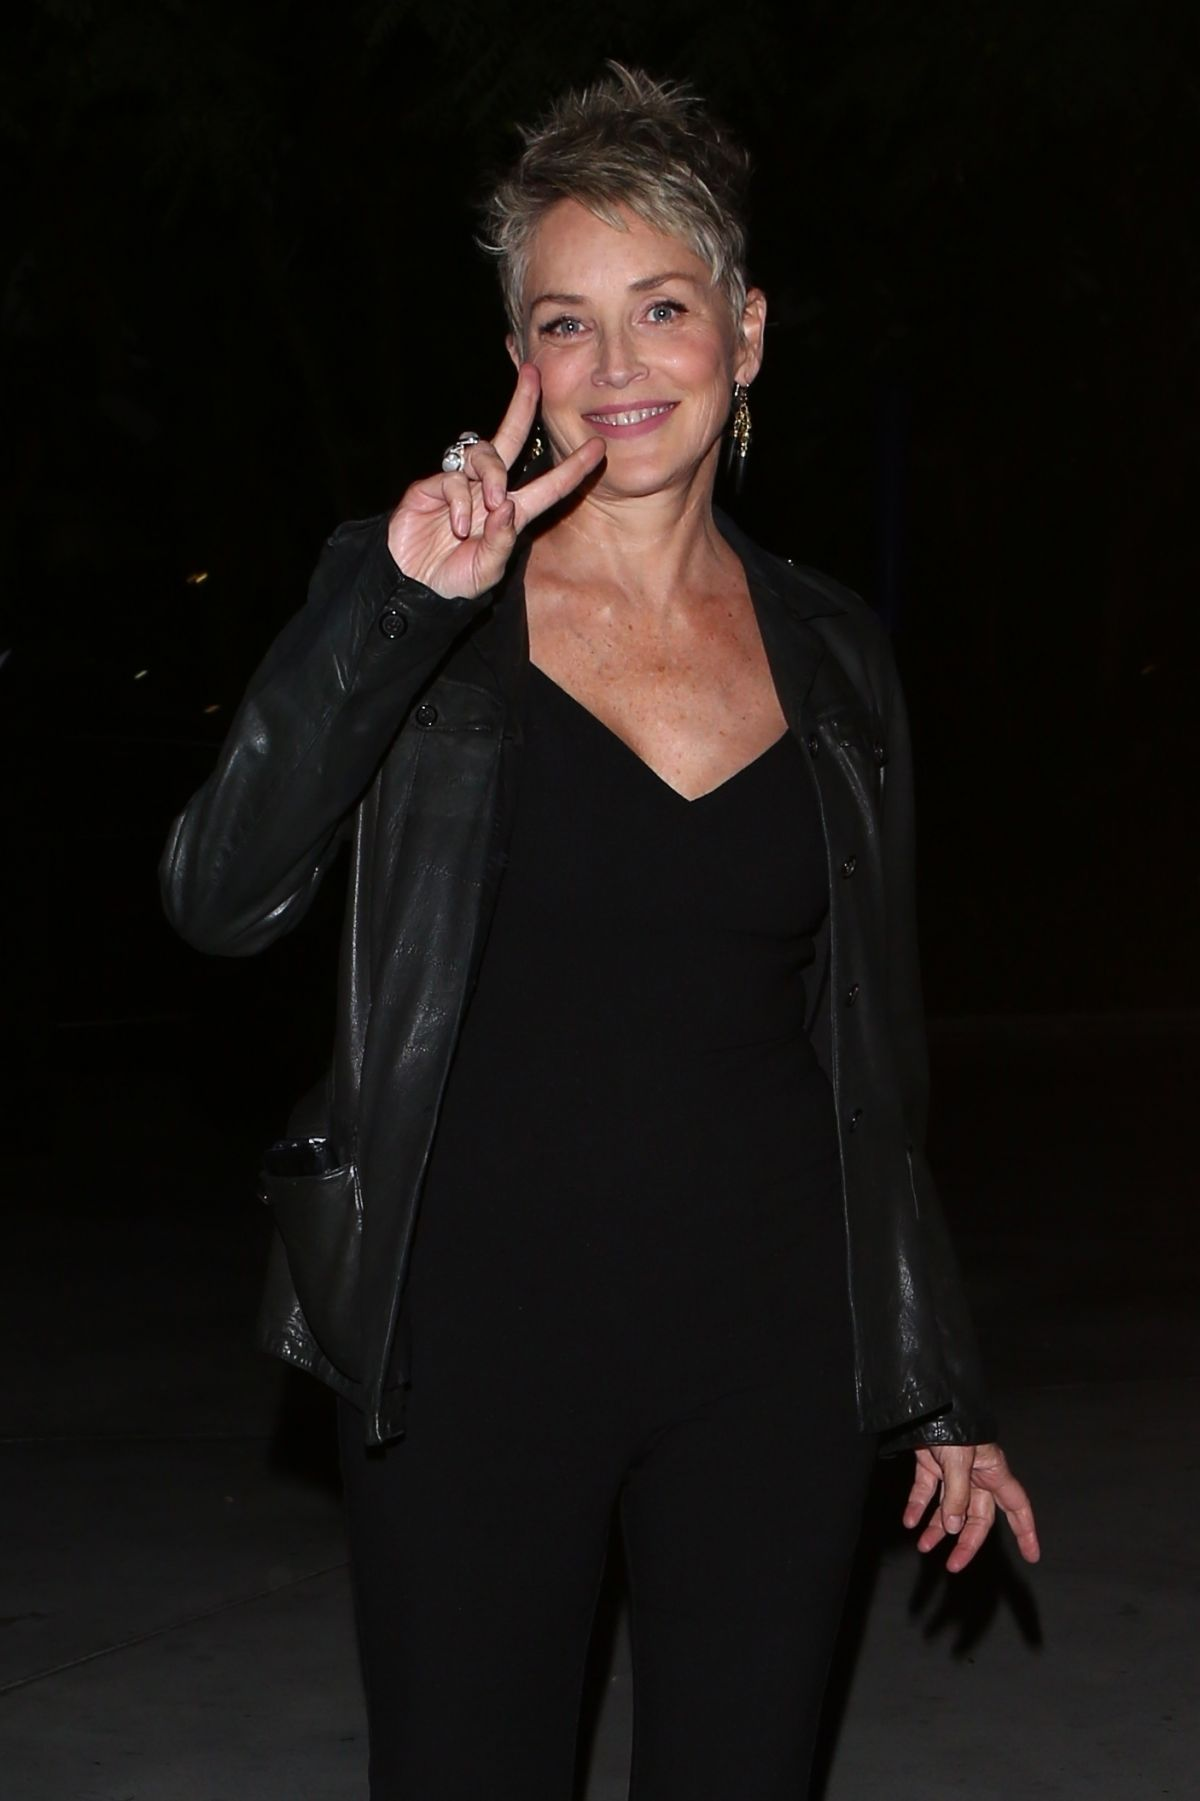 SHARON STONE Arrives at Ed Sheeran Concert in Los Angeles 08/12/2017